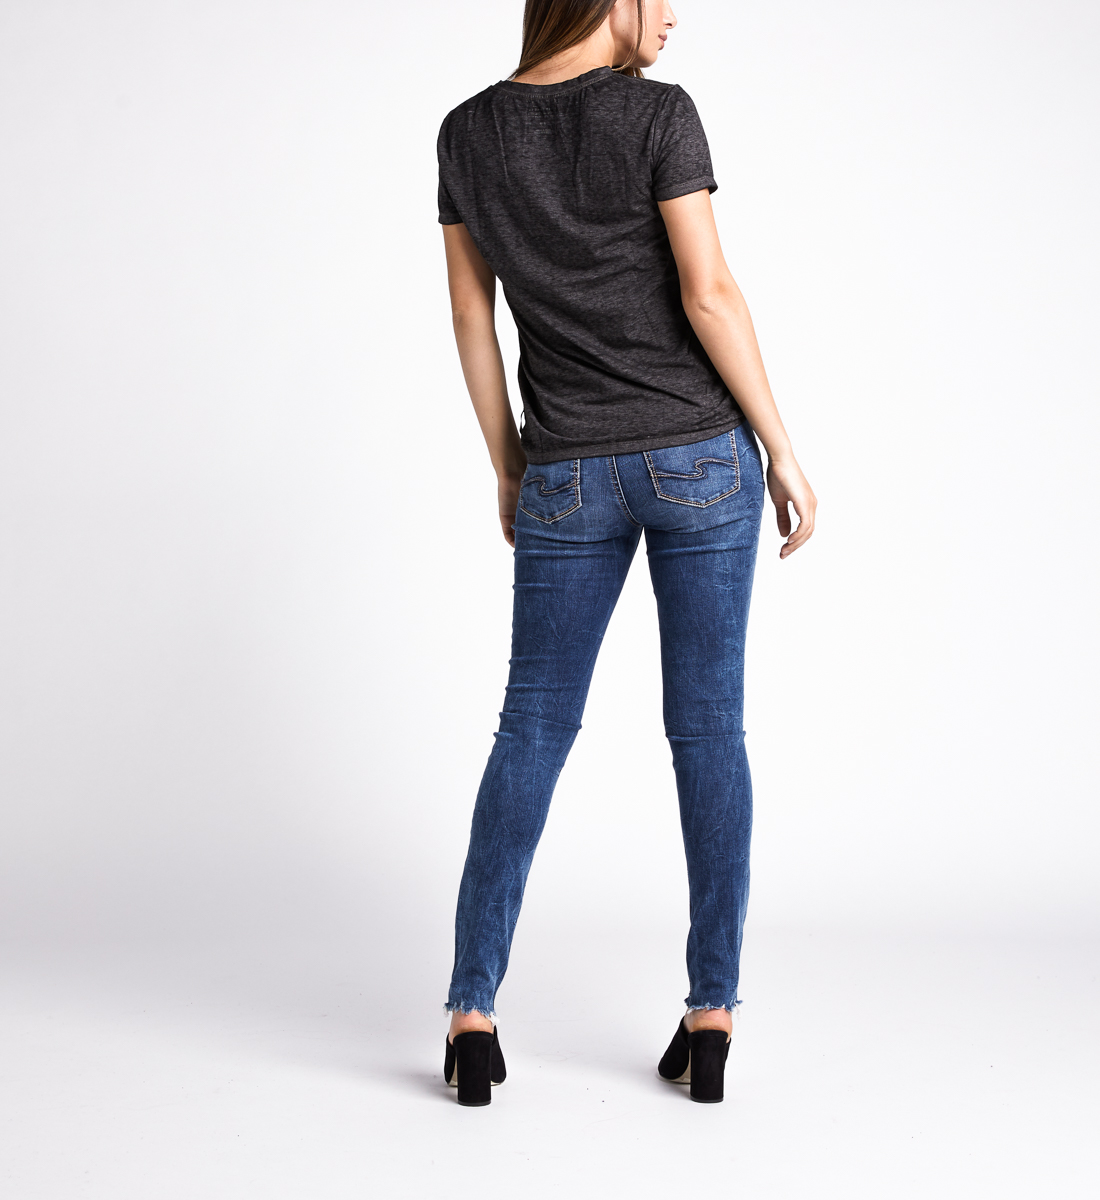 Mara Sunkissed Graphic Tee,Black Side